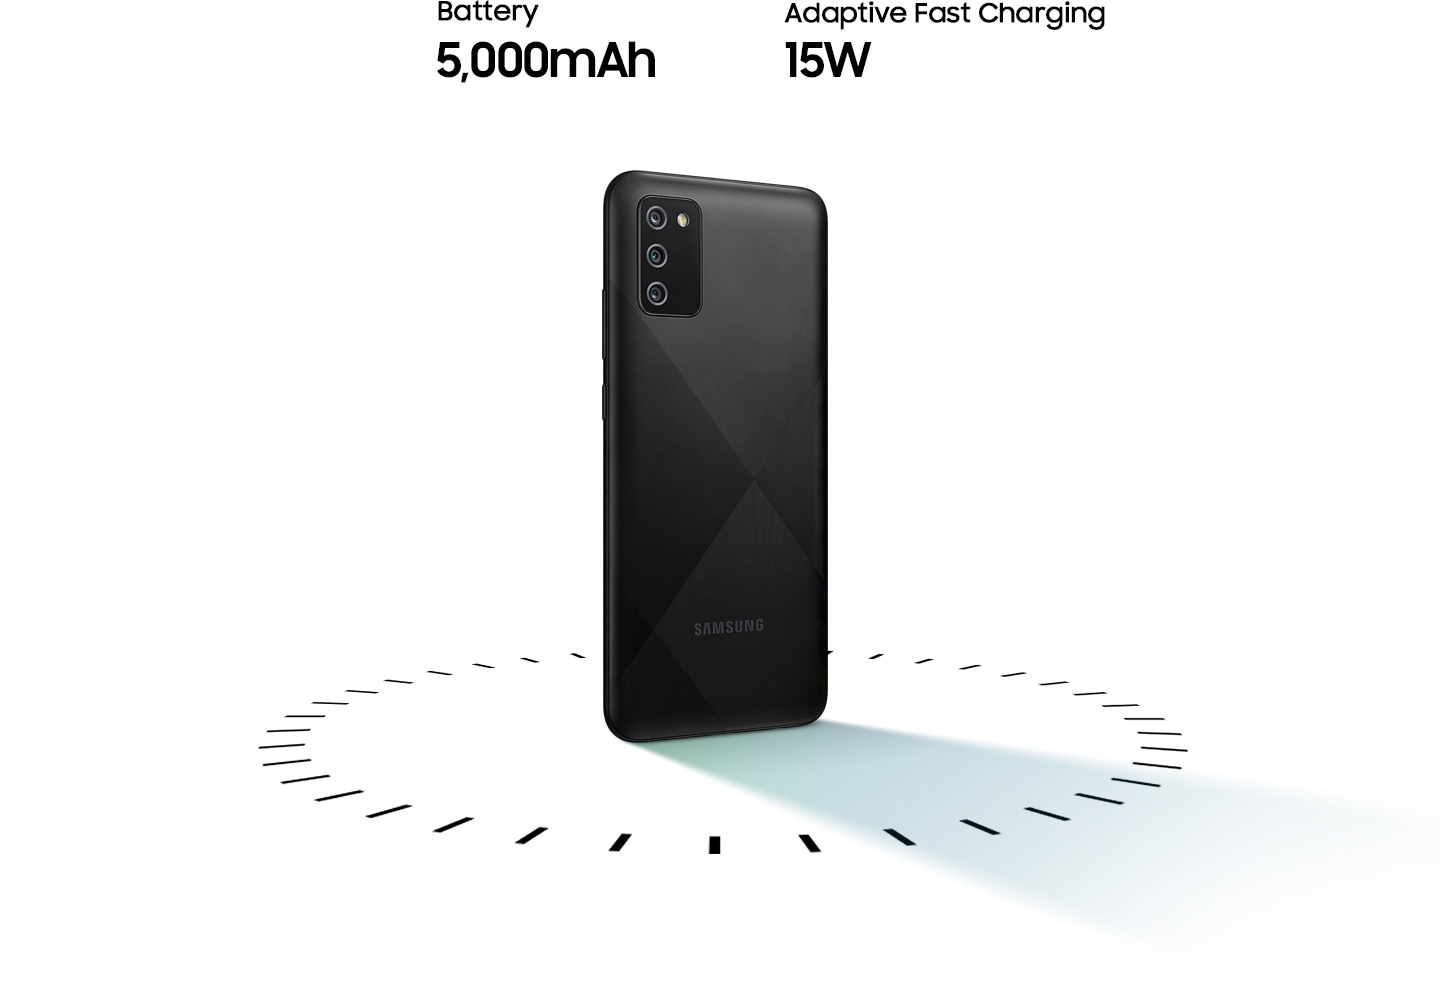 Galaxy A02s stands up, surrounded by circular dots, with the text of 5,000mAh Battery and 15W Adaptive Fast charging.